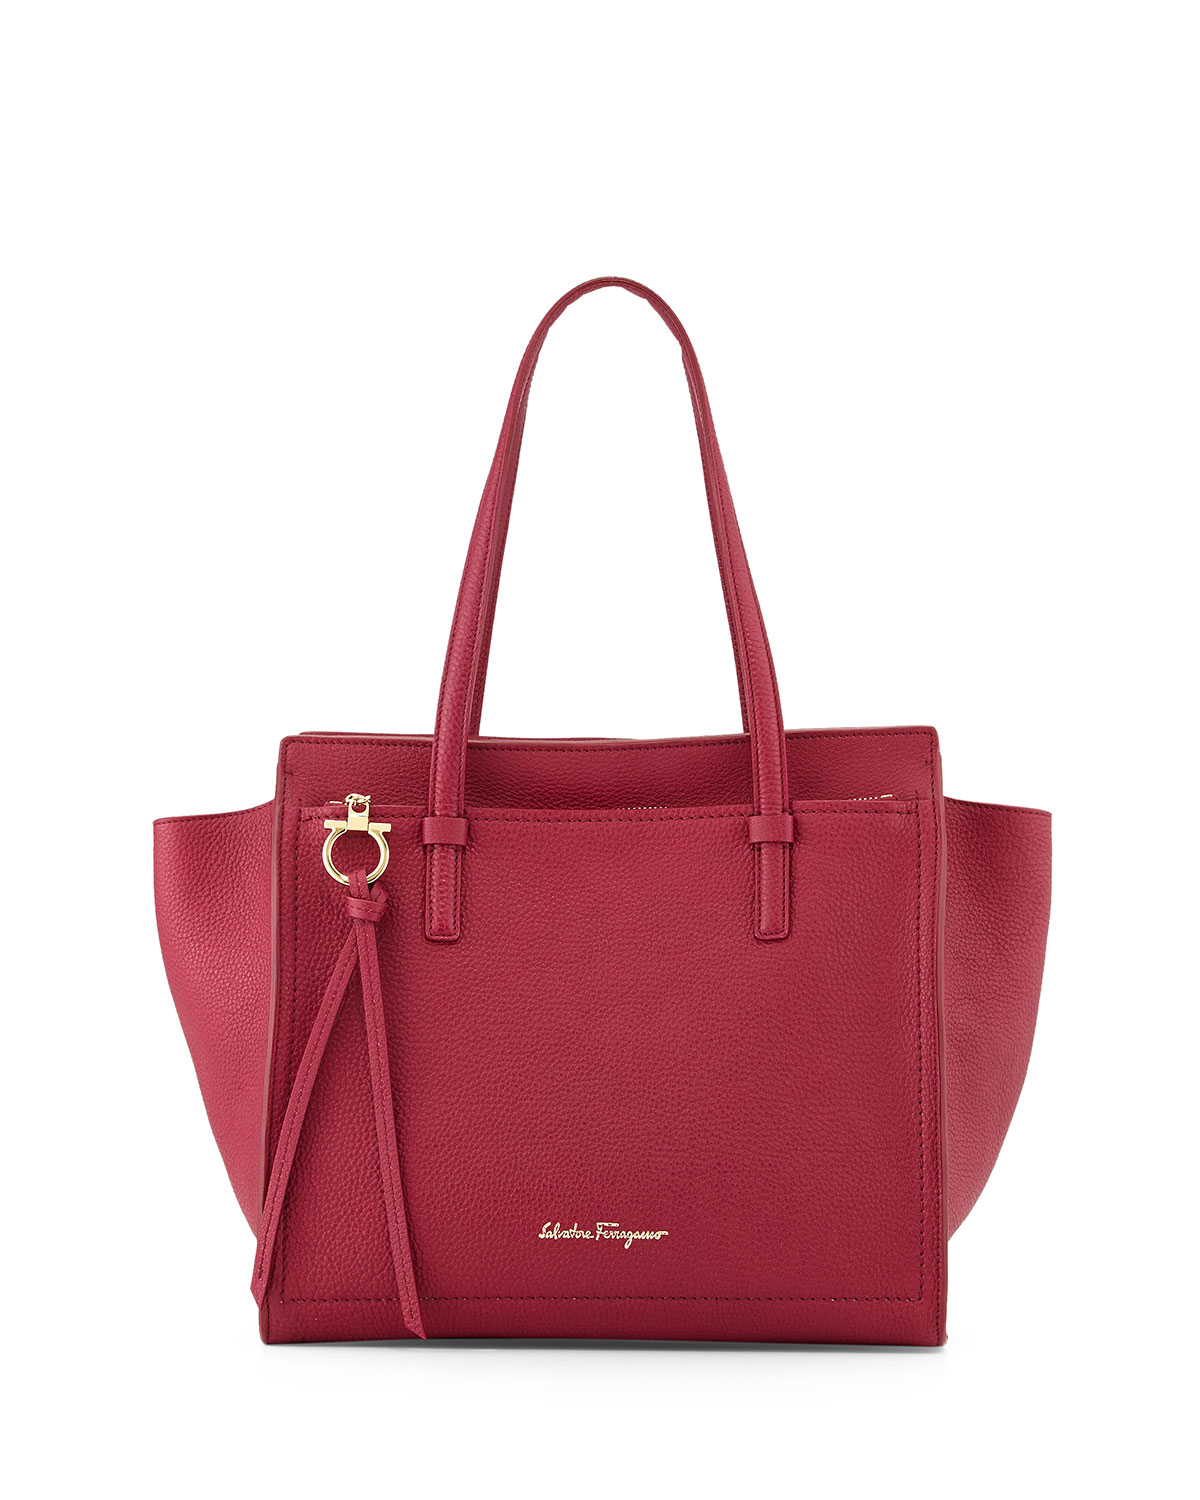 Ferragamo Neiman Marcus Salvatore Ferragamo Amy Gancini Small Shopper Tote Bag Wine